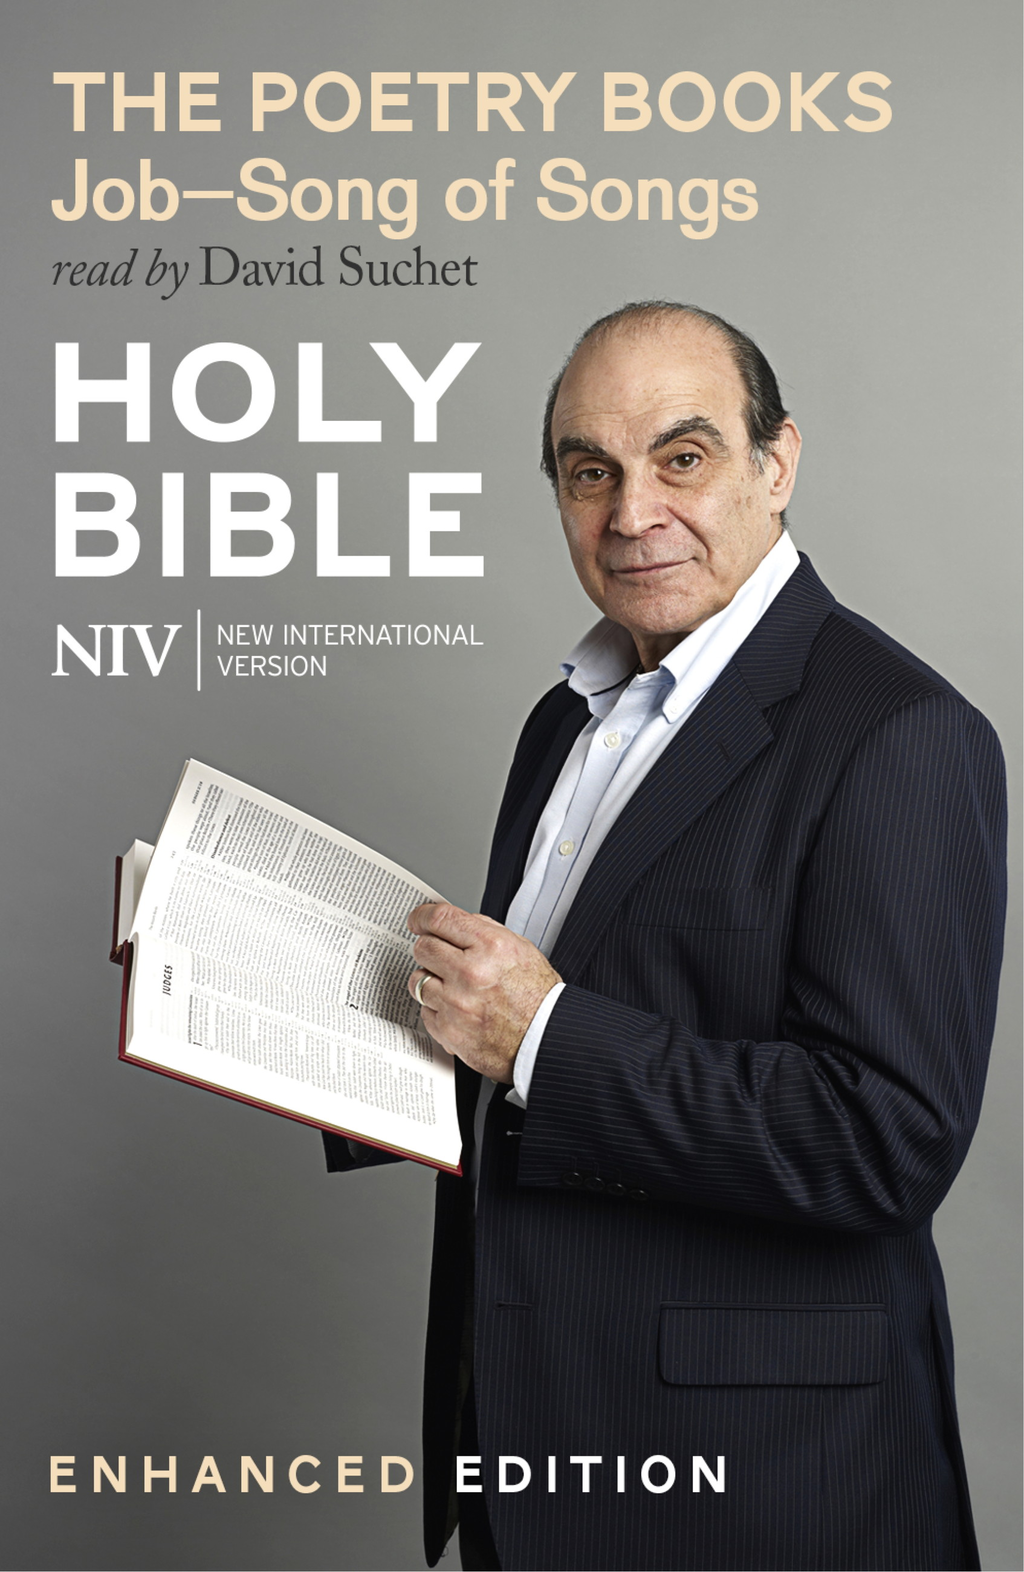 NIV Bible: the Poetry Books (Enhanced Edition) Job?Song of Songs (read by David Suchet)